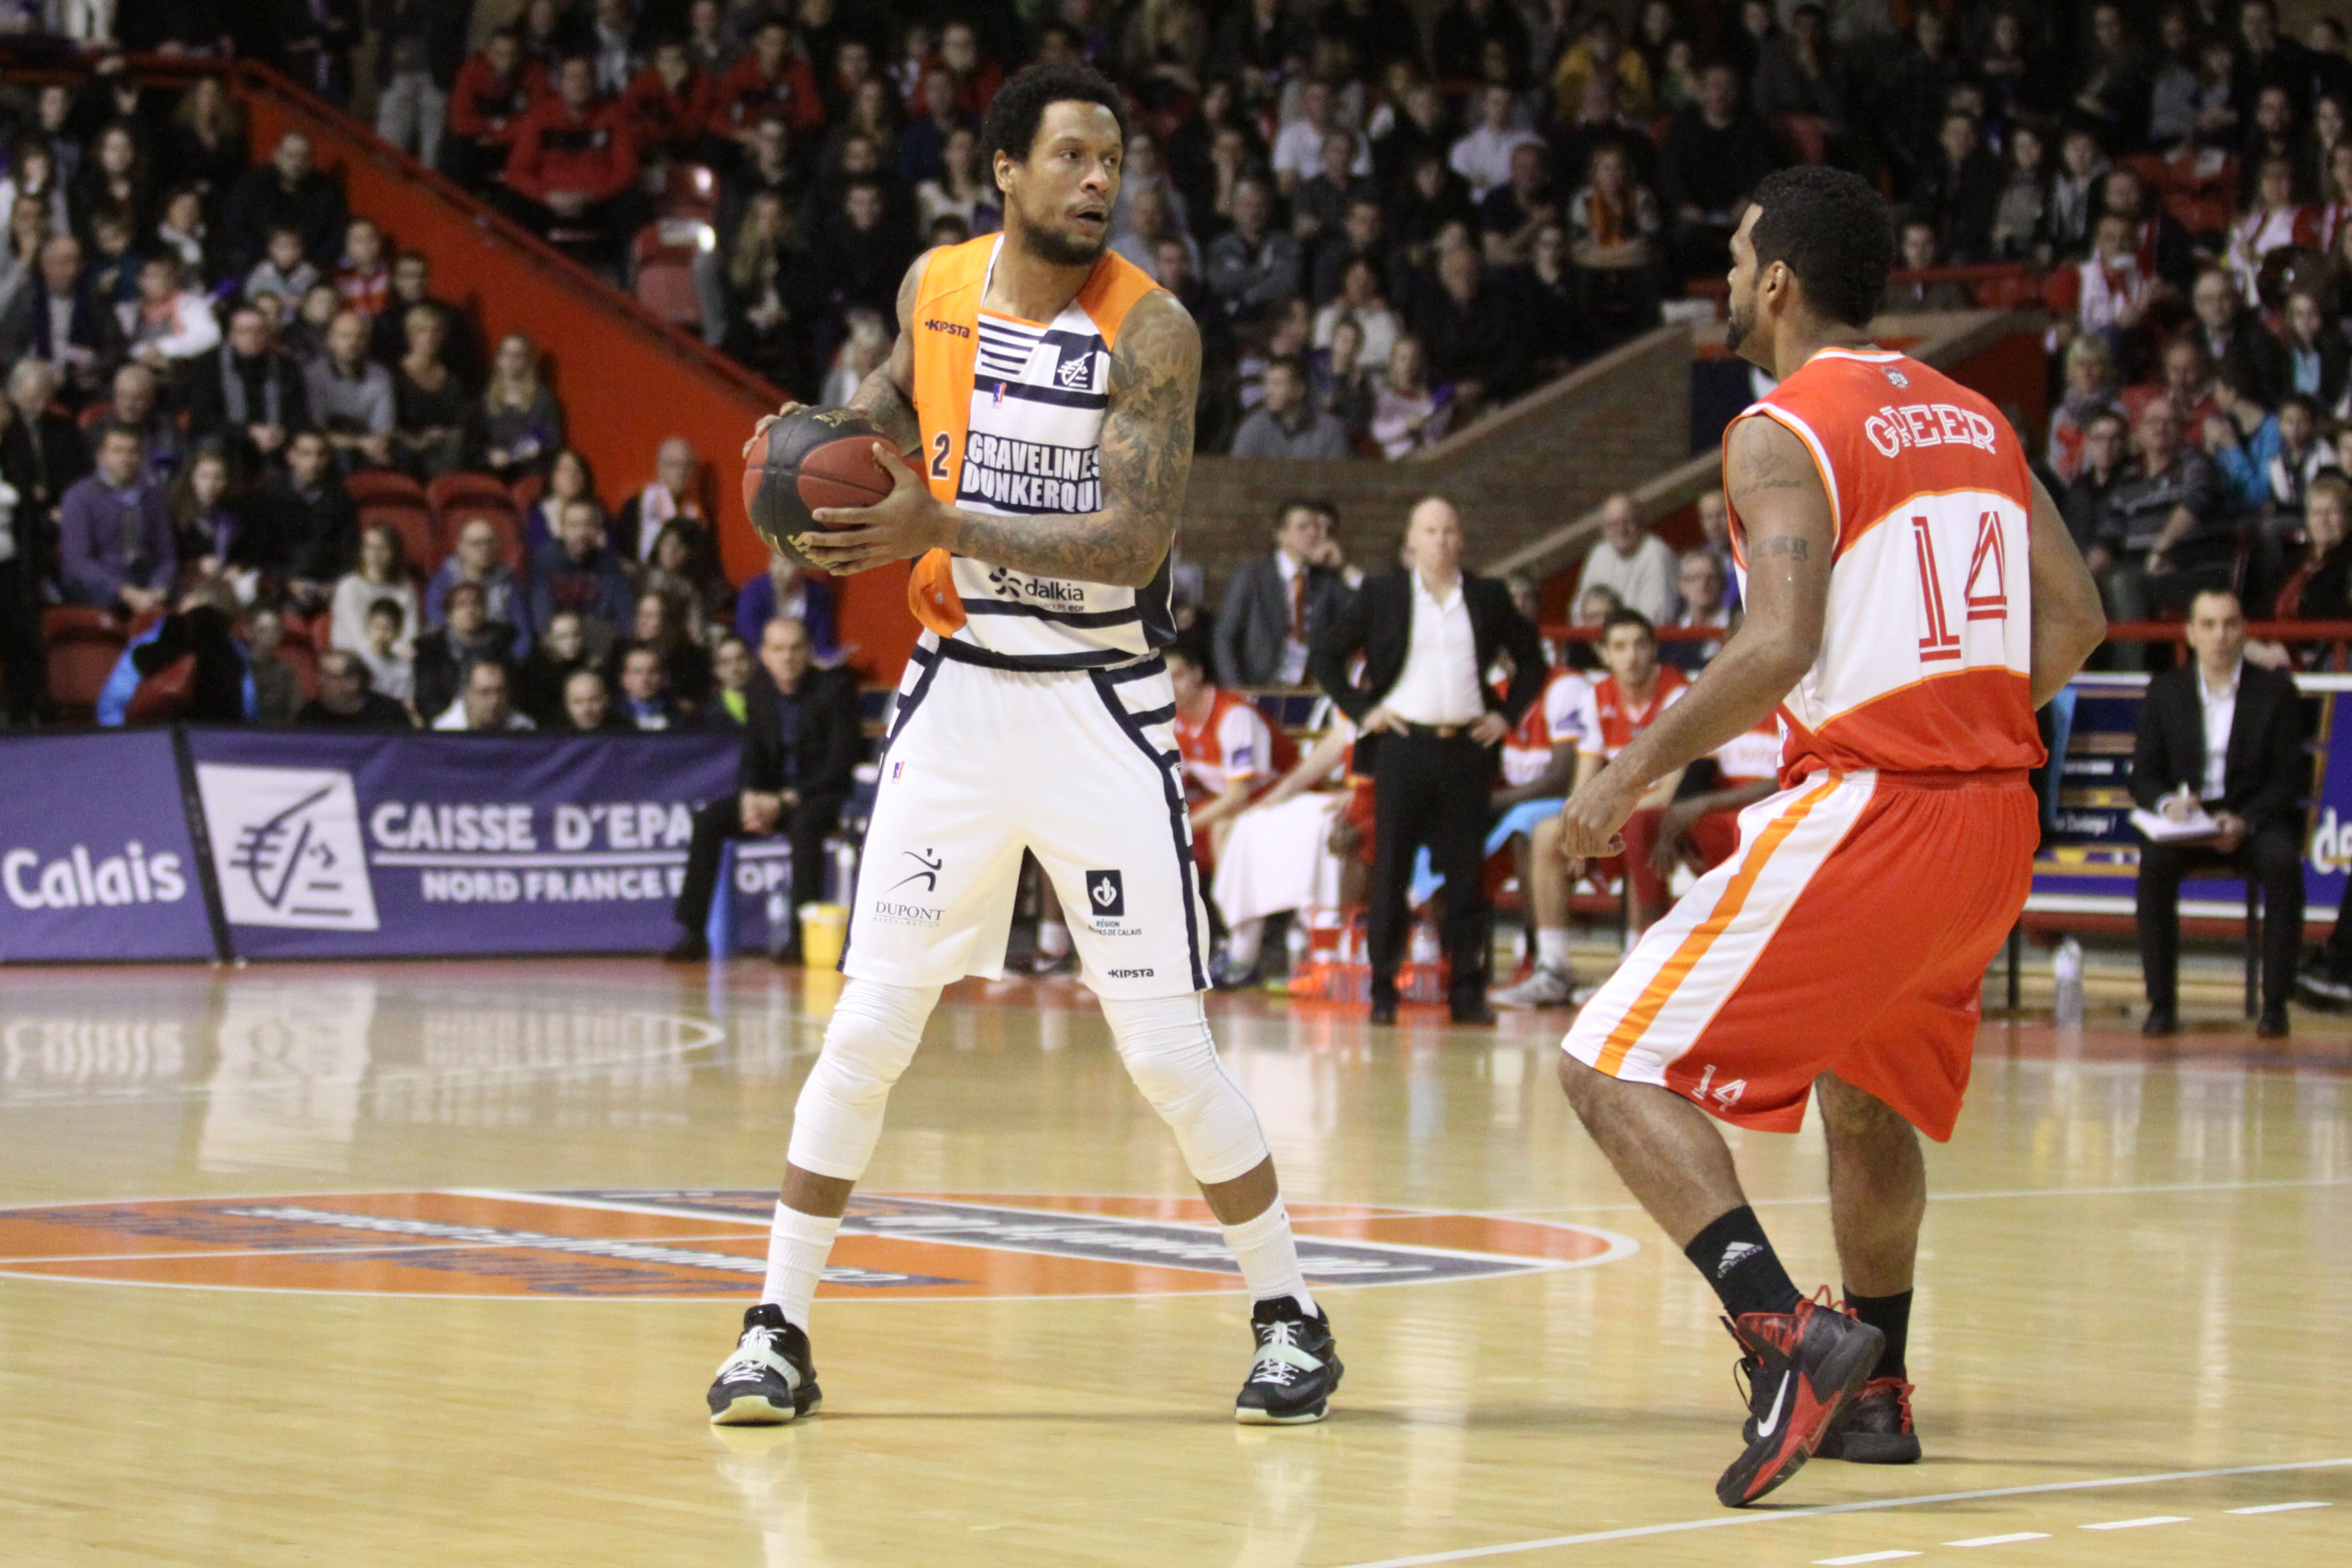 Lawrence ROBERTS (BCM Gravelines)